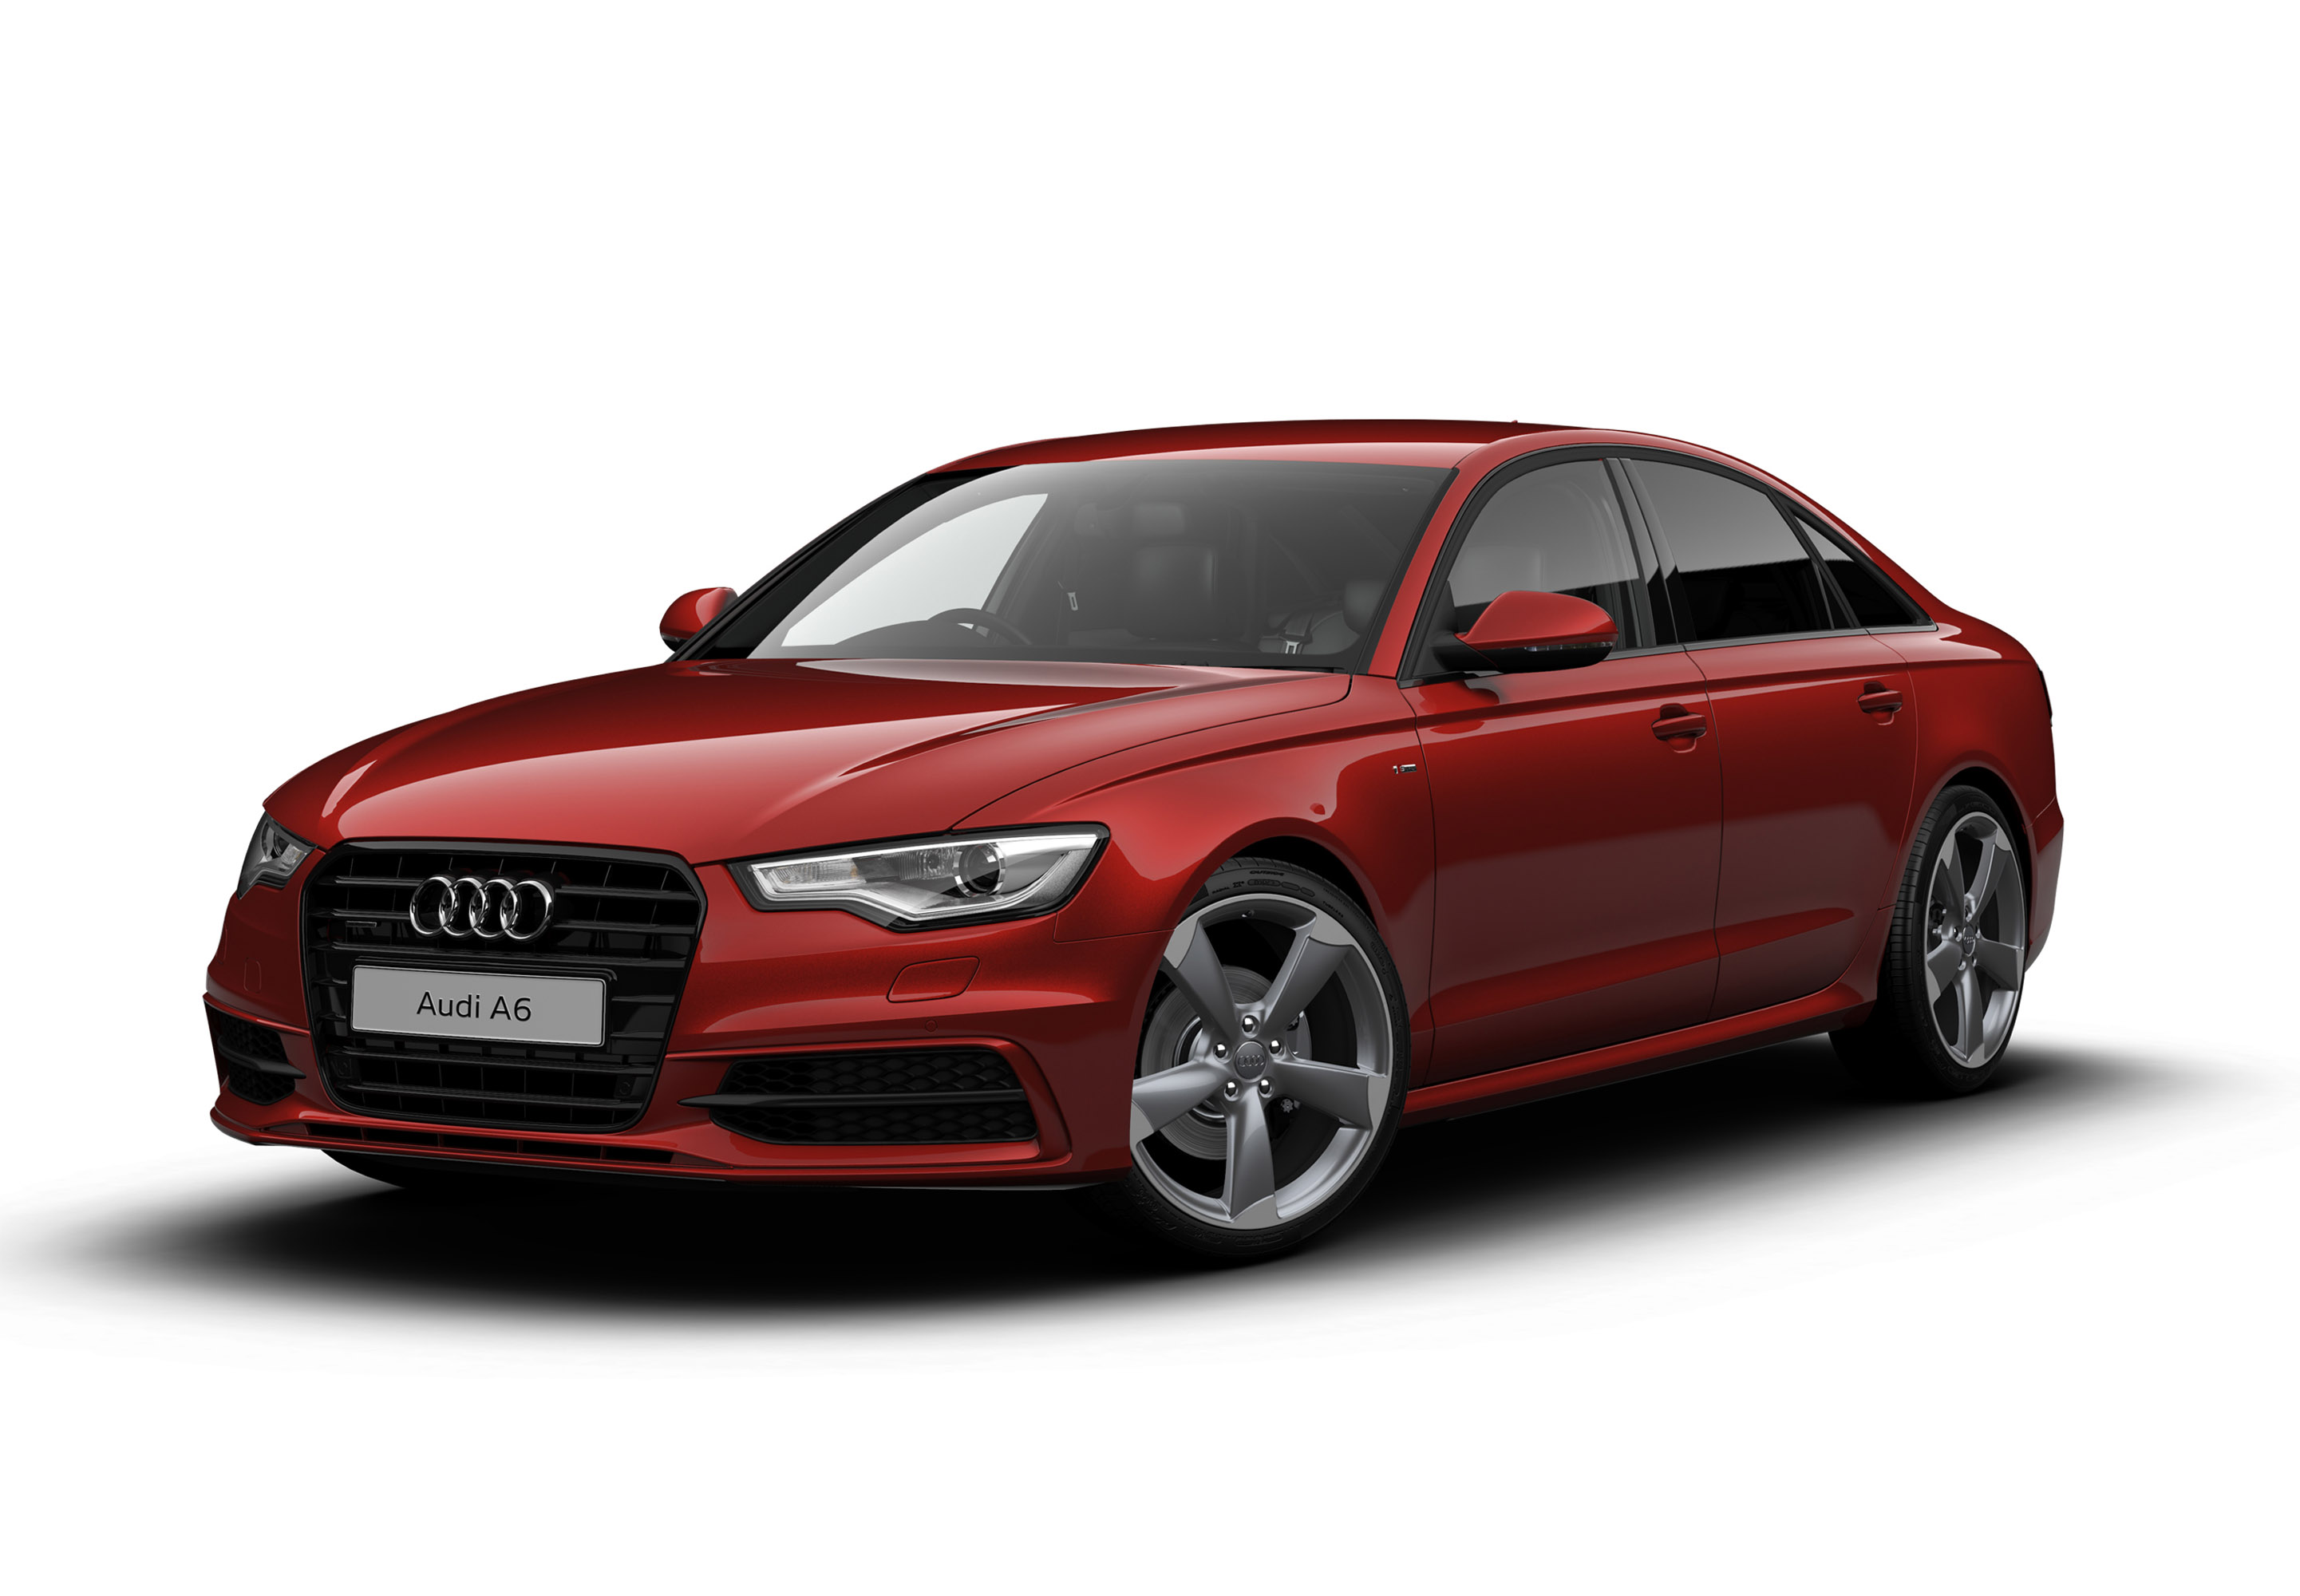 Audi A6 And A7 Black Edition Models